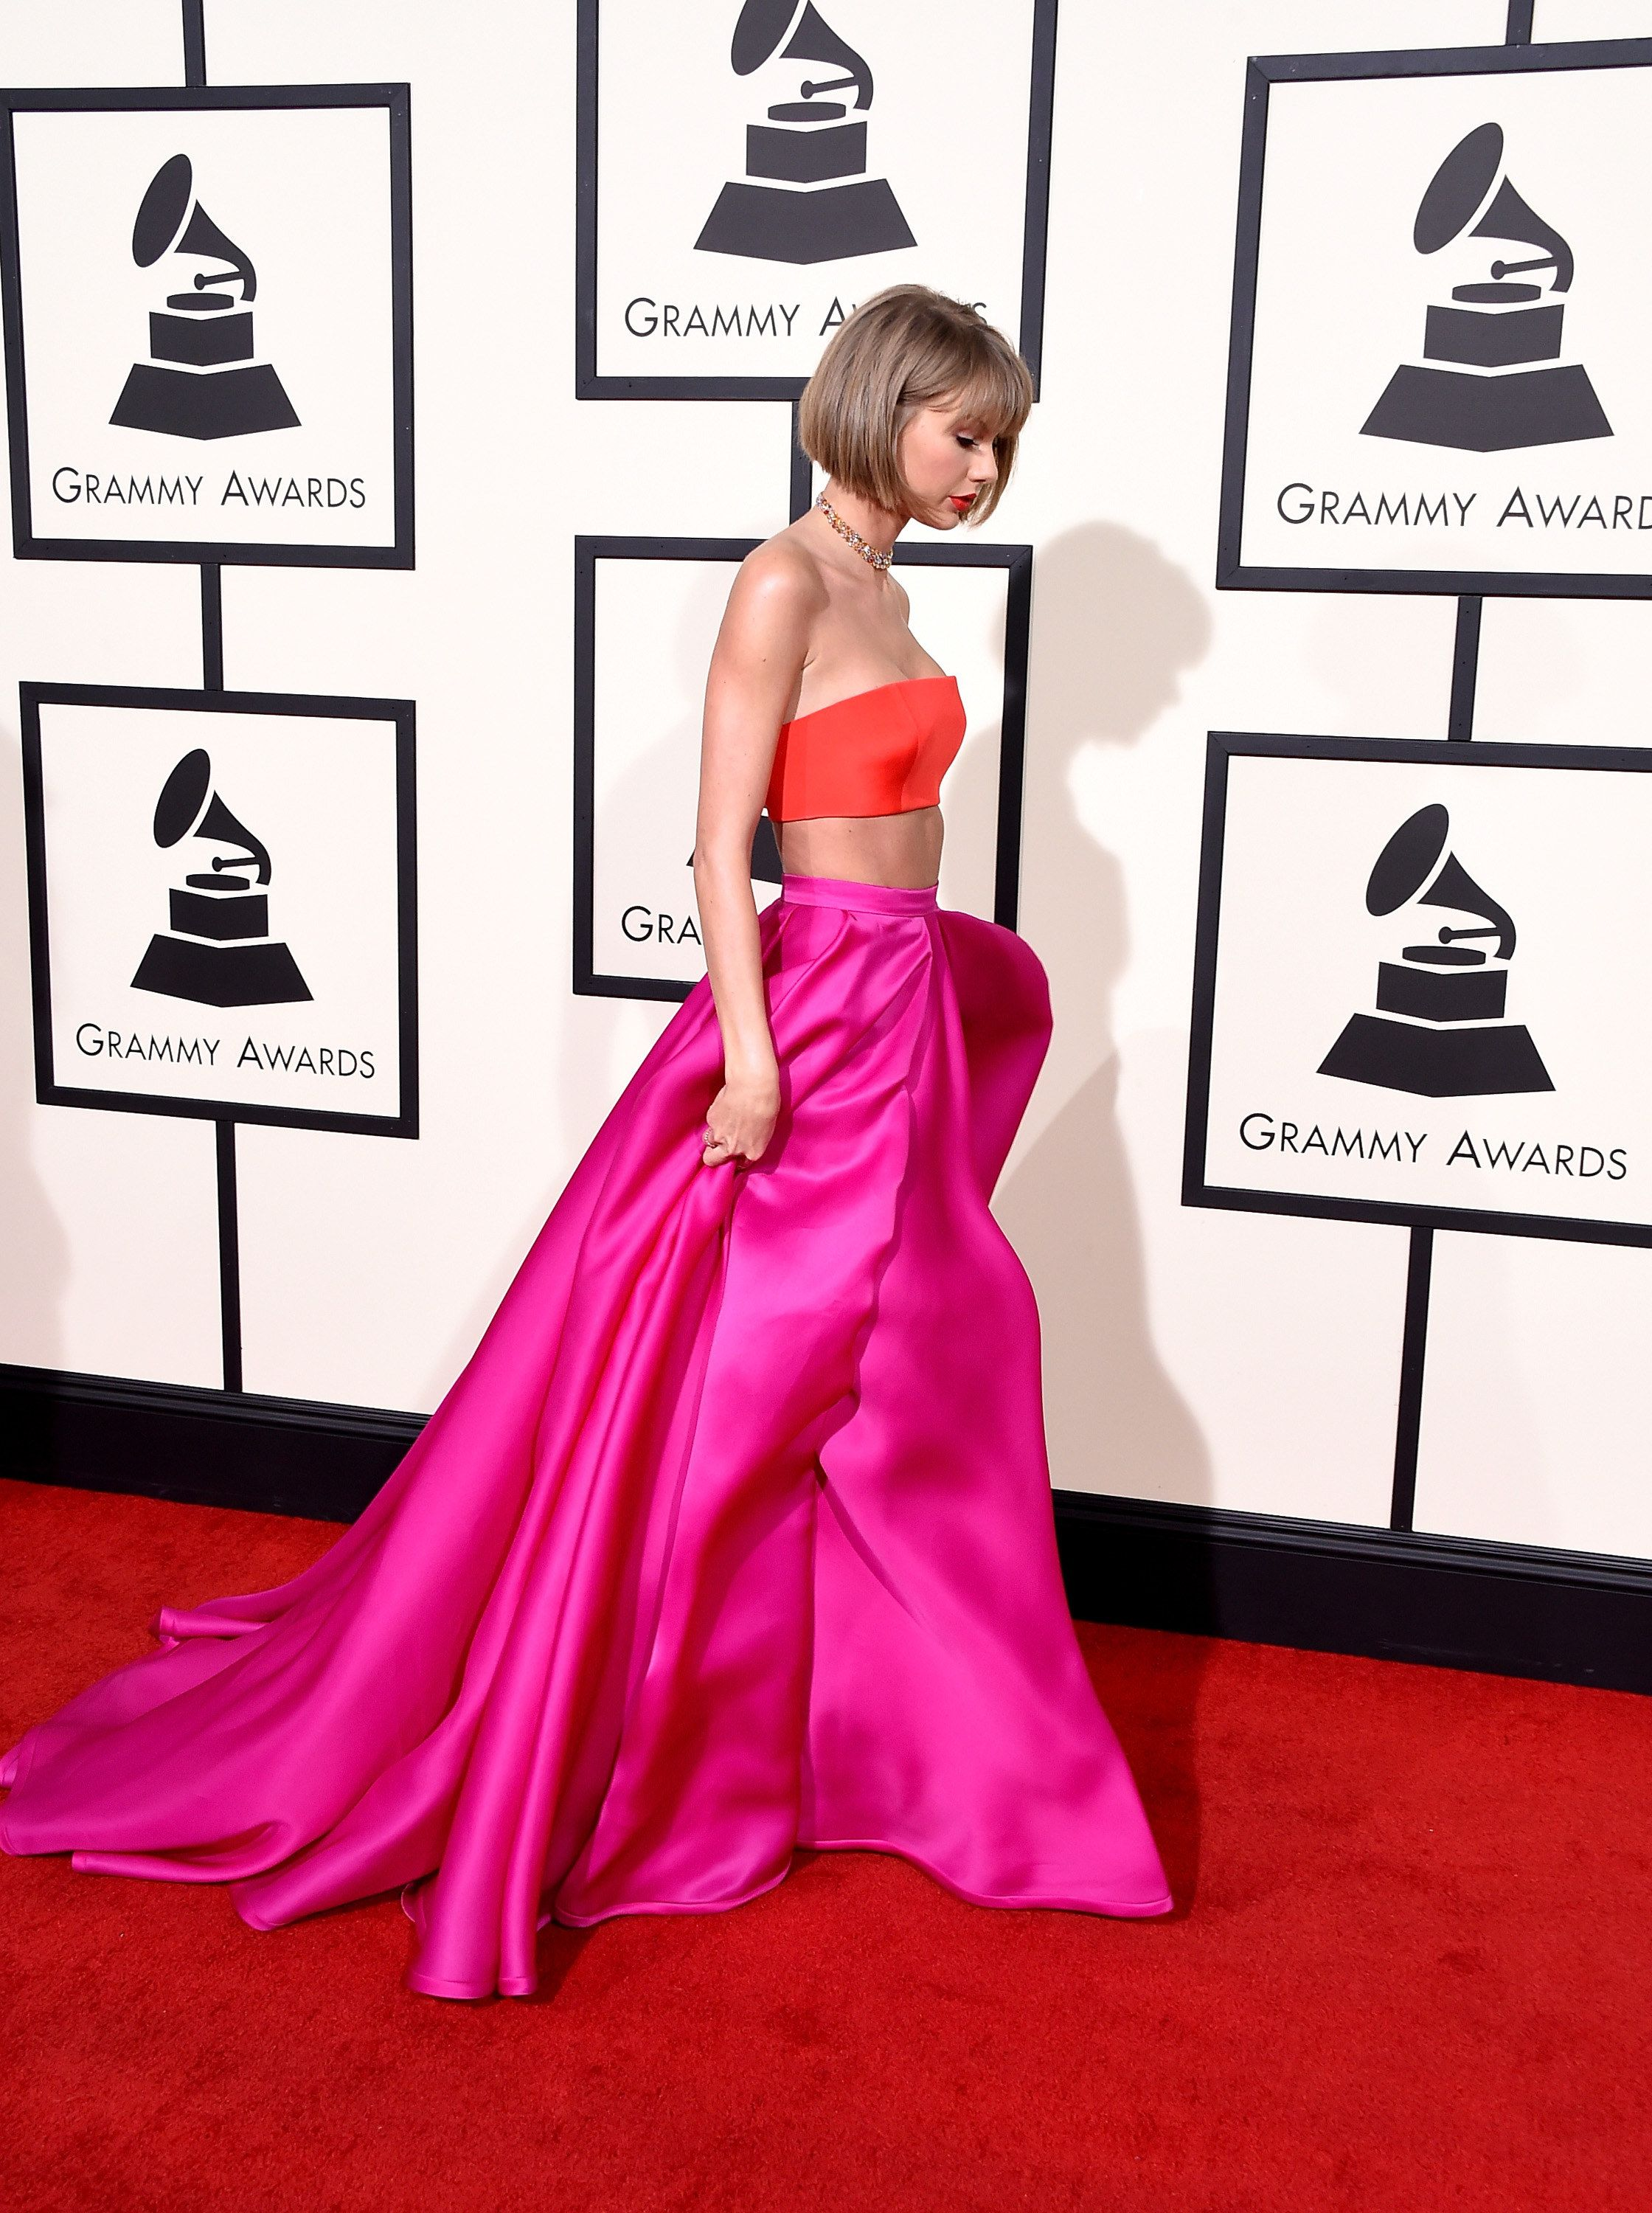 Taylor Swift S Grammy Look Is Her Most Daring Red Carpet Outfit Ever Grammy Dresses Red Carpet Outfits Taylor Swift Web